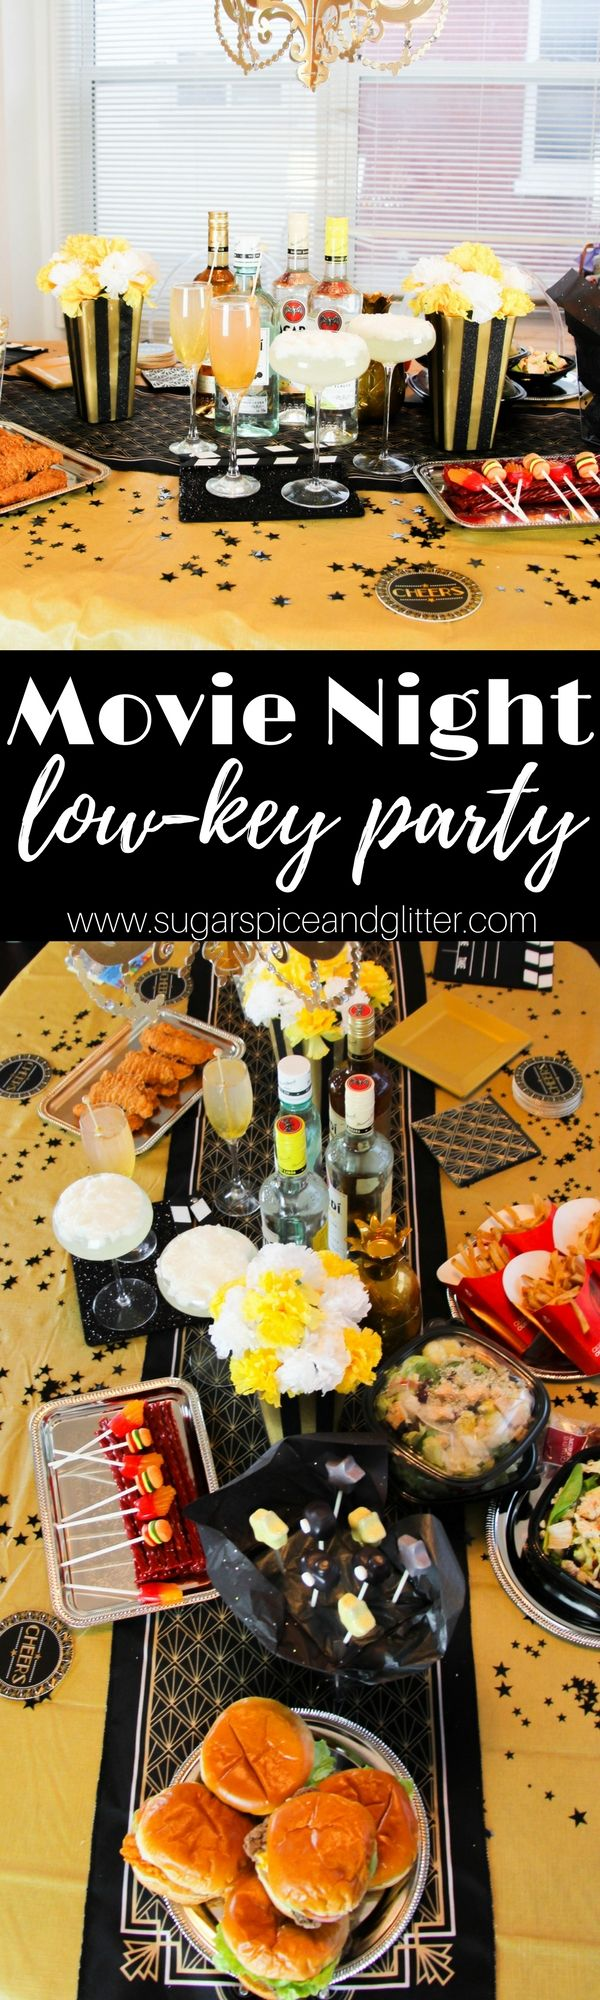 Msg 4 21+ Movie Night Party for Grown-ups - a low-key movie night with serious glam factor. Check out our tips for an impressive party with minimal effort, including no-bake burger cookies and two delicious #cocktails #SignatureSips ad